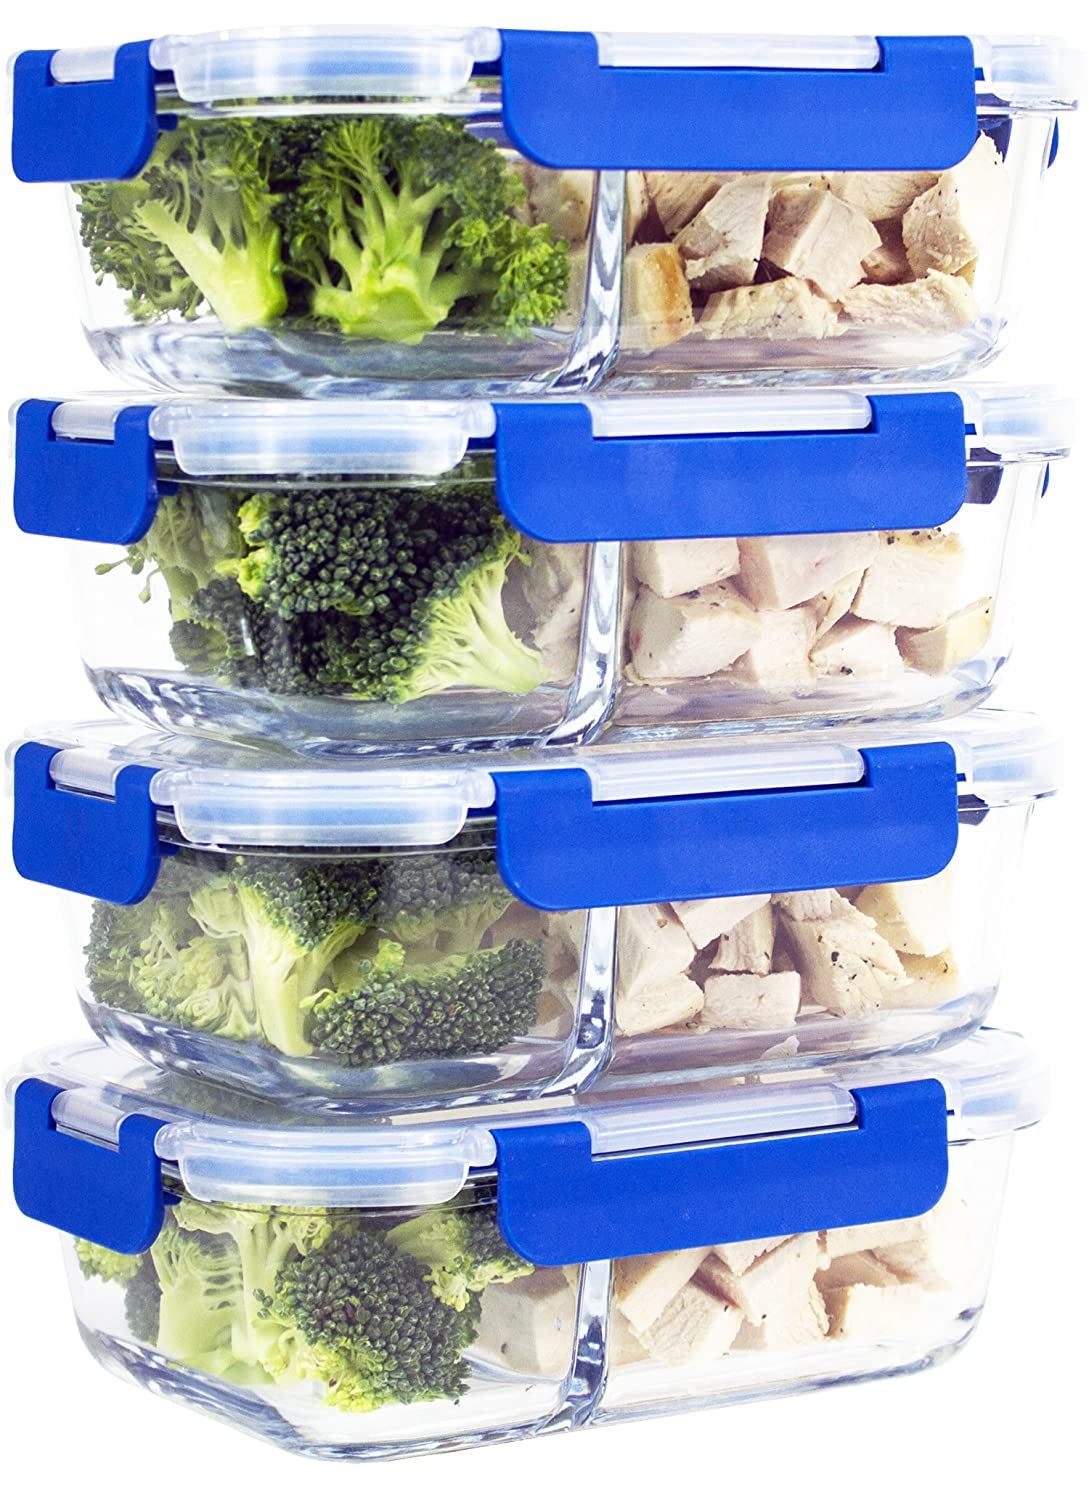 [Larger Premium 4 Set] 2 Compartment Glass Meal Prep Containers with Lifetime Lasting Snap Locking Lids Glass Food Containers BPA-Free, Microwave, Oven, Freezer and Dishwasher Safe (950 ML, 32 Oz.) Misc Home